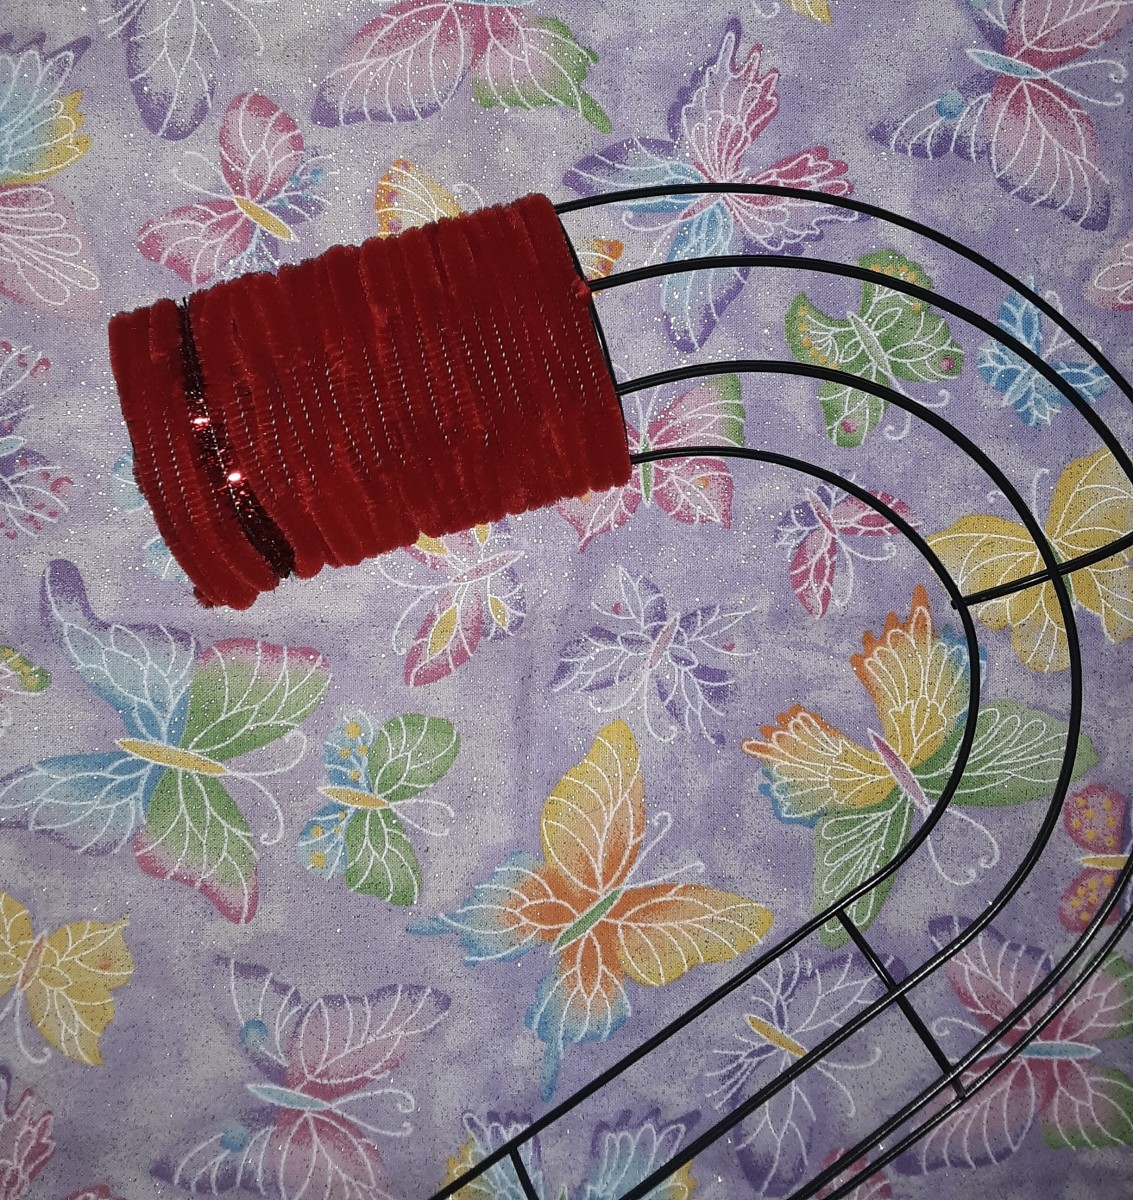 Continue to weave the sticks through the frame until a section of the cane is red.